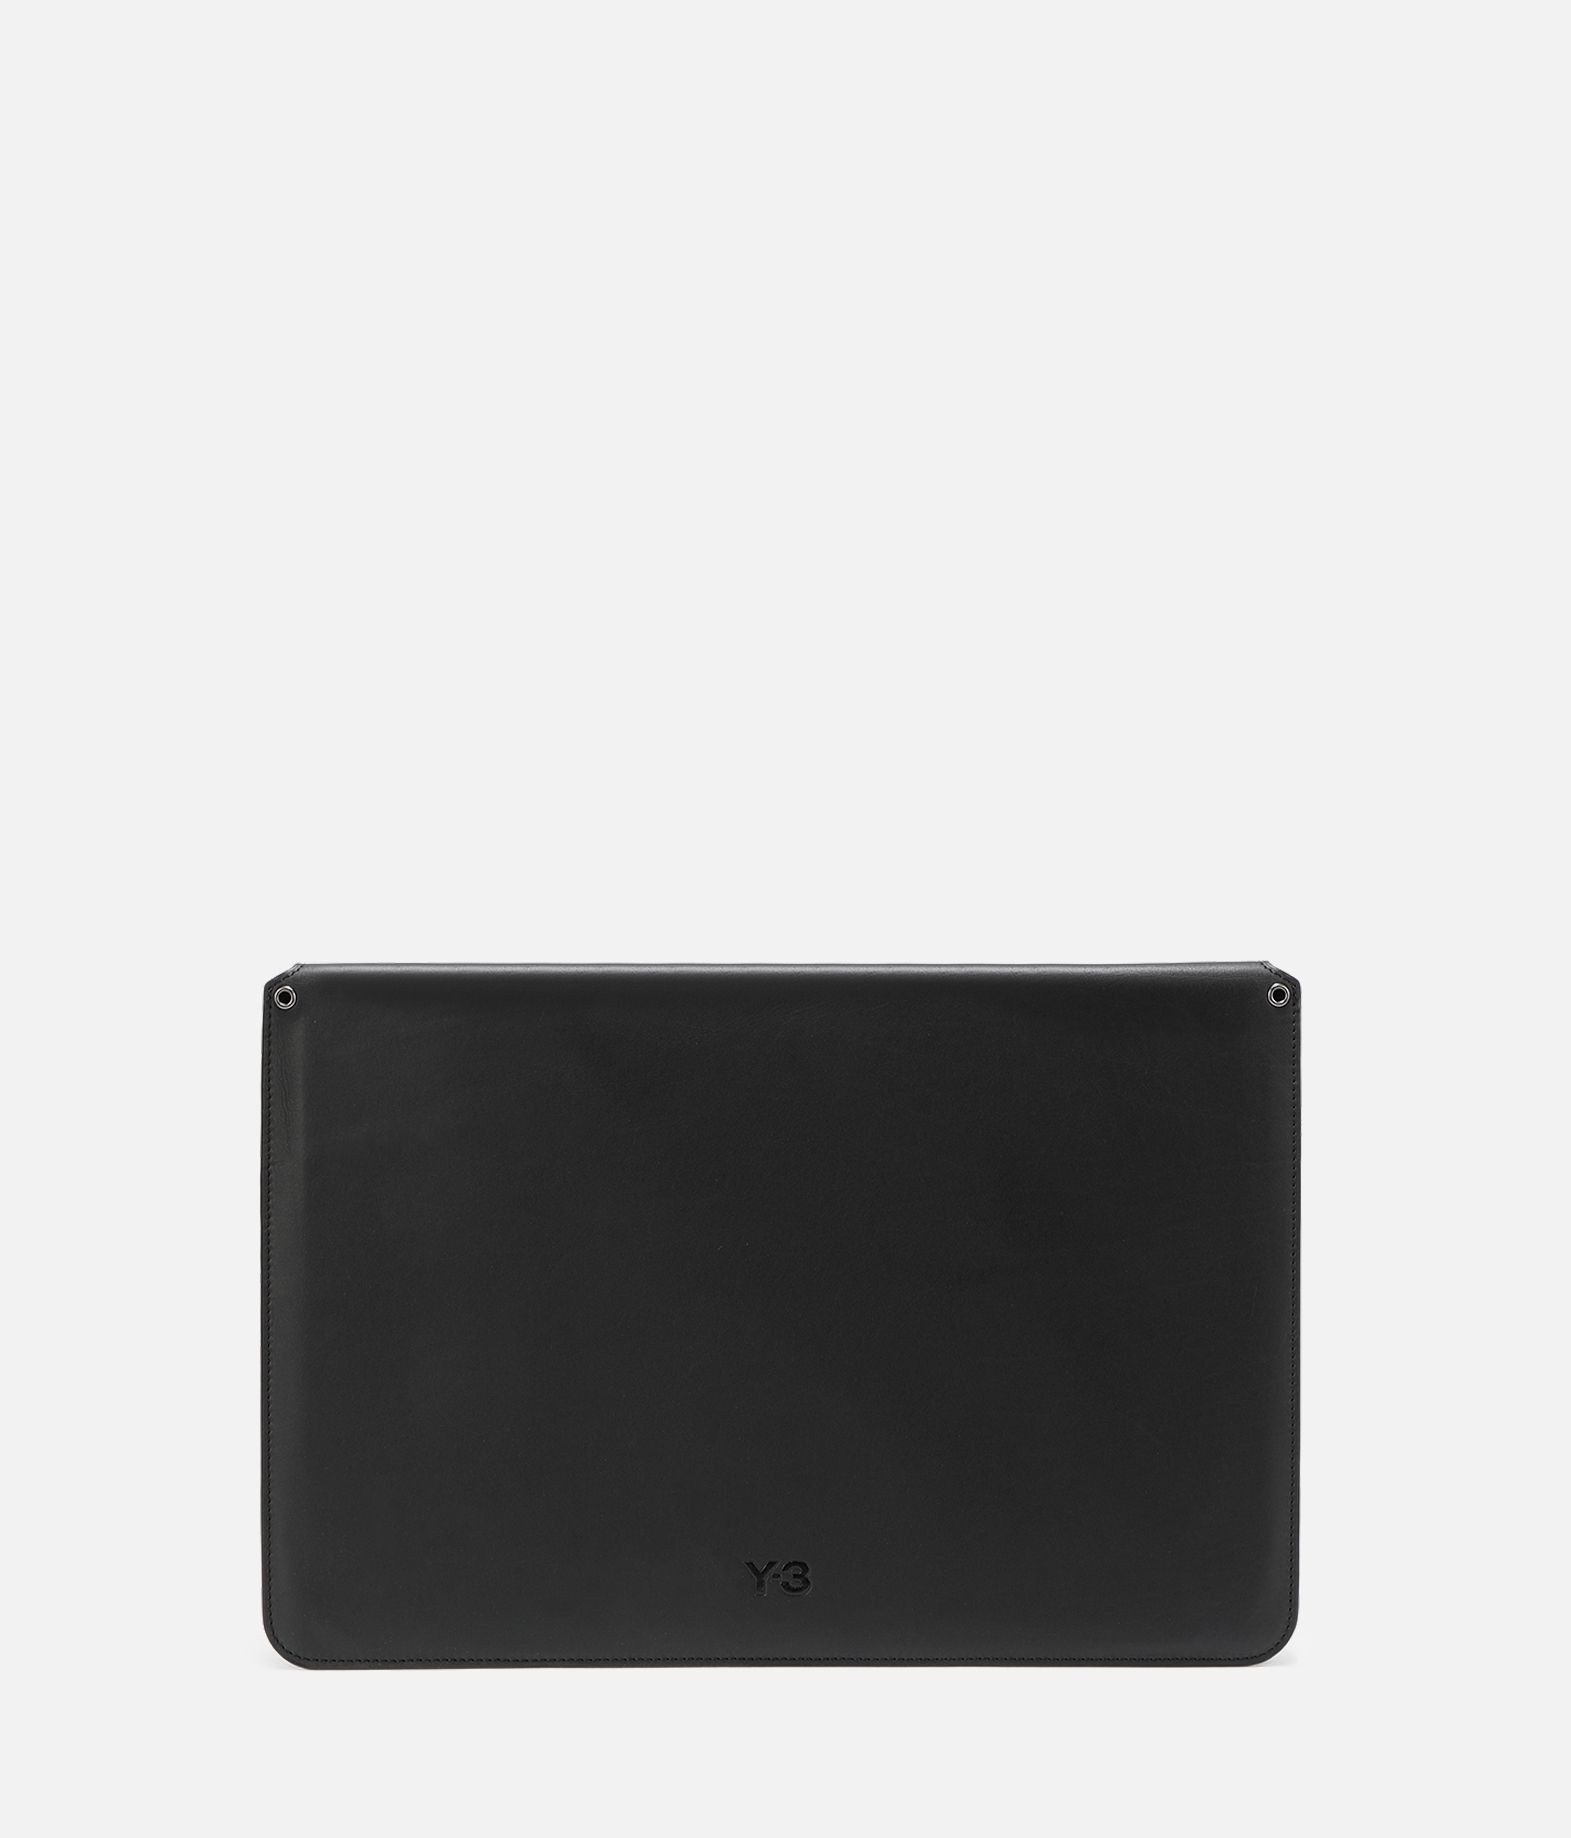 "Y-3 Y-3 Laptop Sleeve 13"" Laptop Sleeve E r"